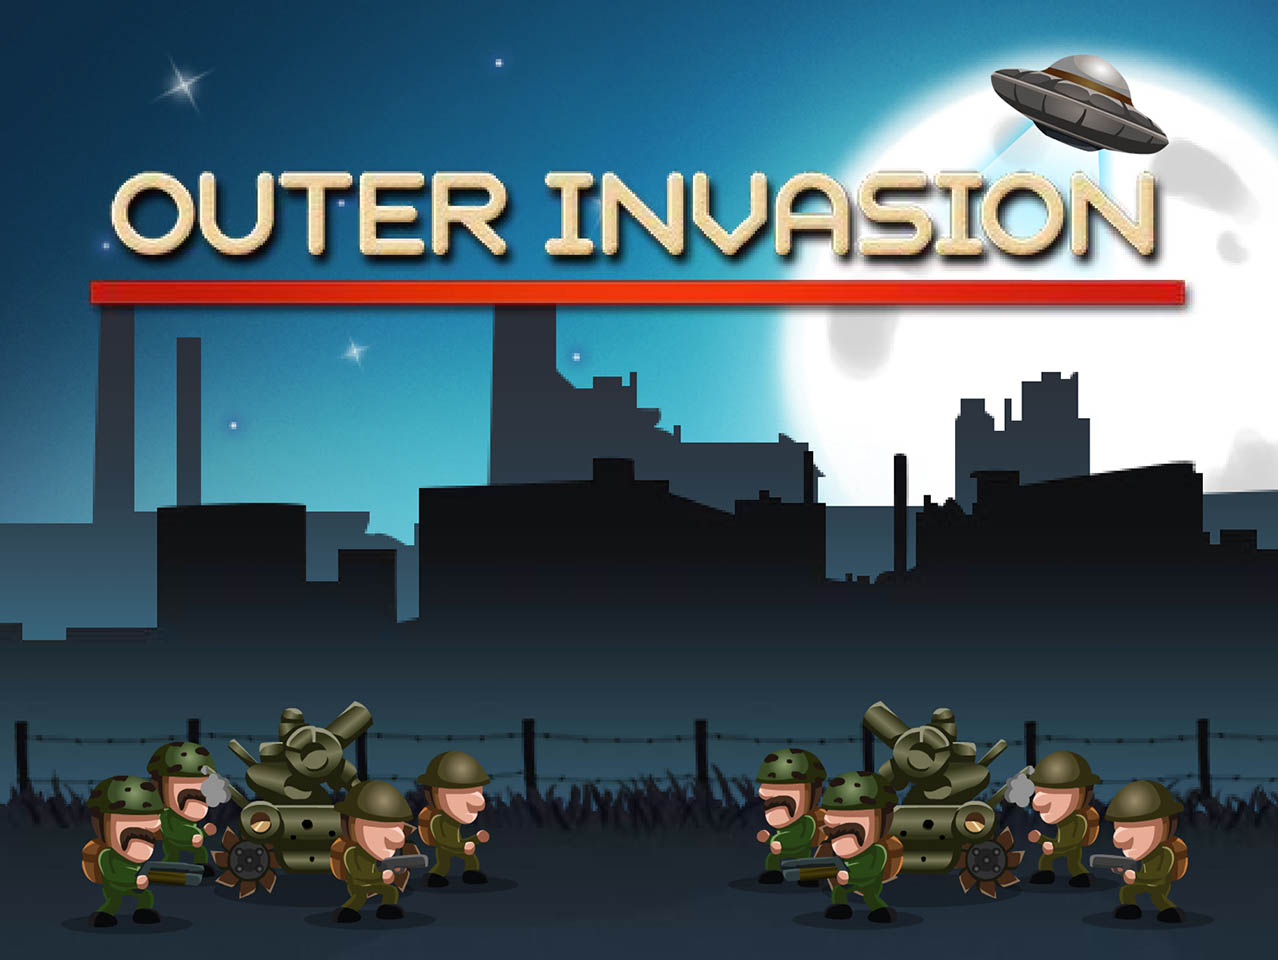 outerinvasion